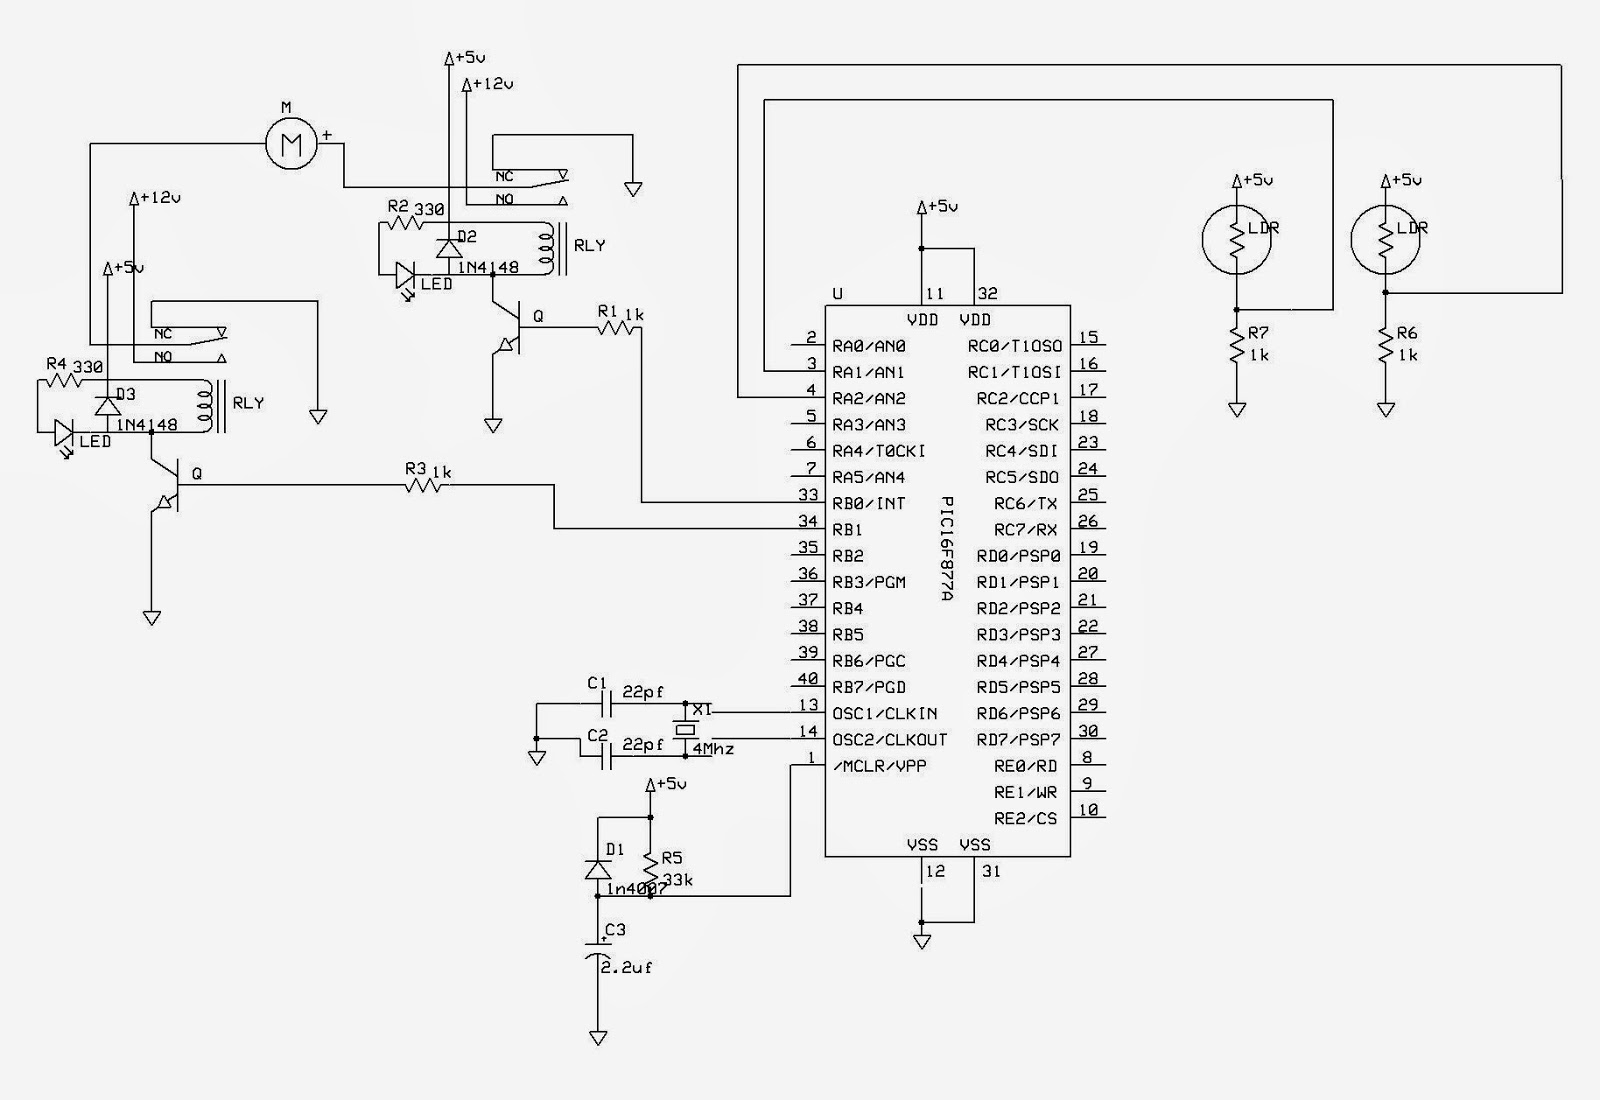 Solar Tracker Pic16f877a Projects Analog To Digital Converter Using Microcontroller Convert The Input Voltage From Source 5 V Ouput Because Integrated Circuit Only Need Operate Diagram Is As Shown Below